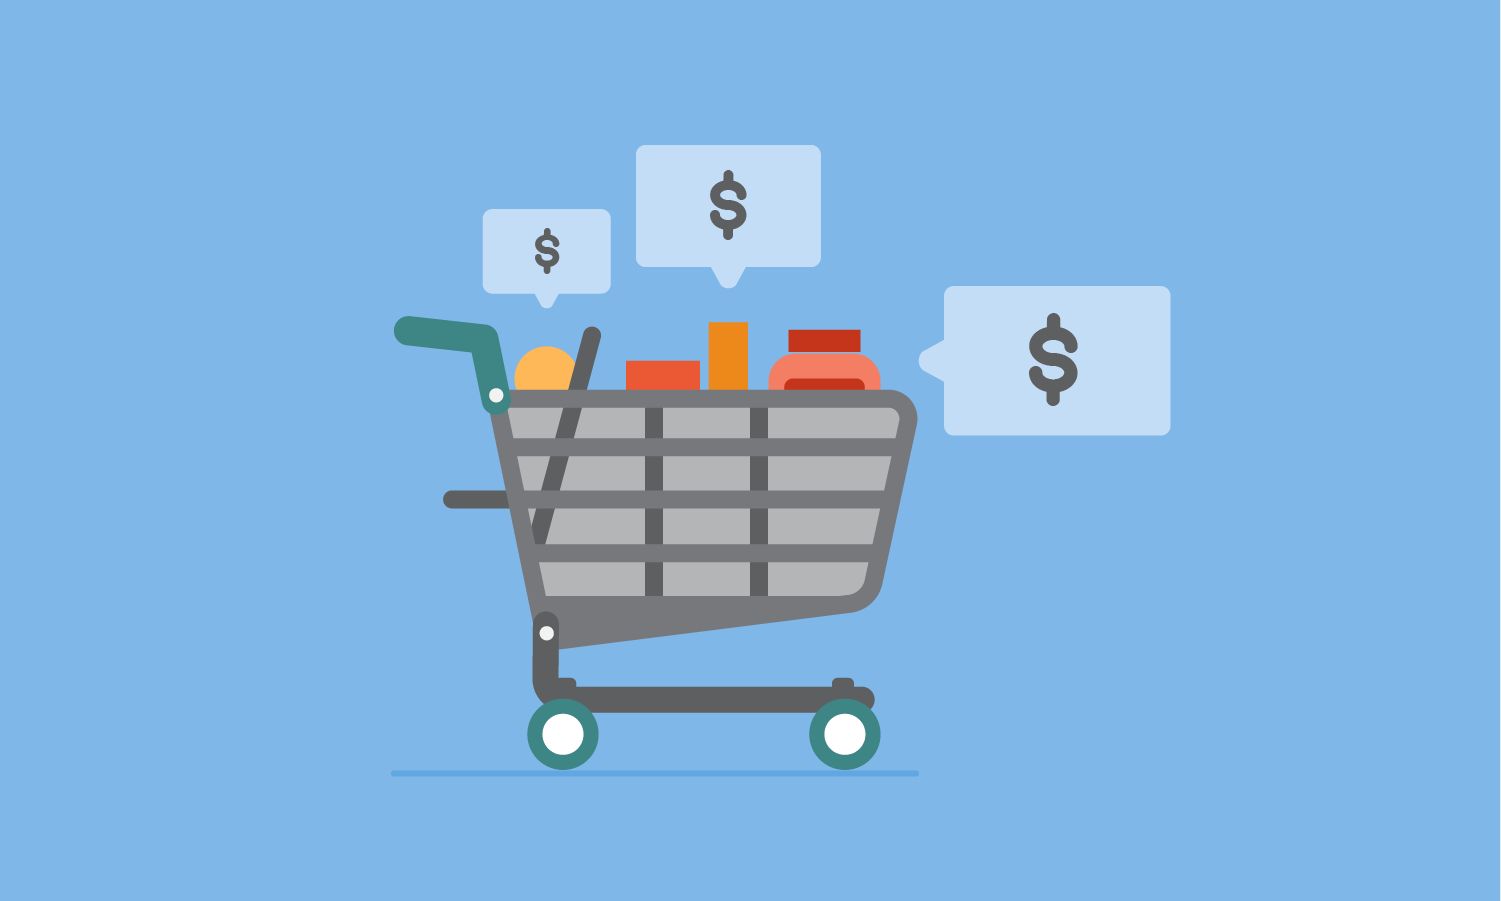 Grocery shopping cart surrounded by dollar signs in speech bubbles